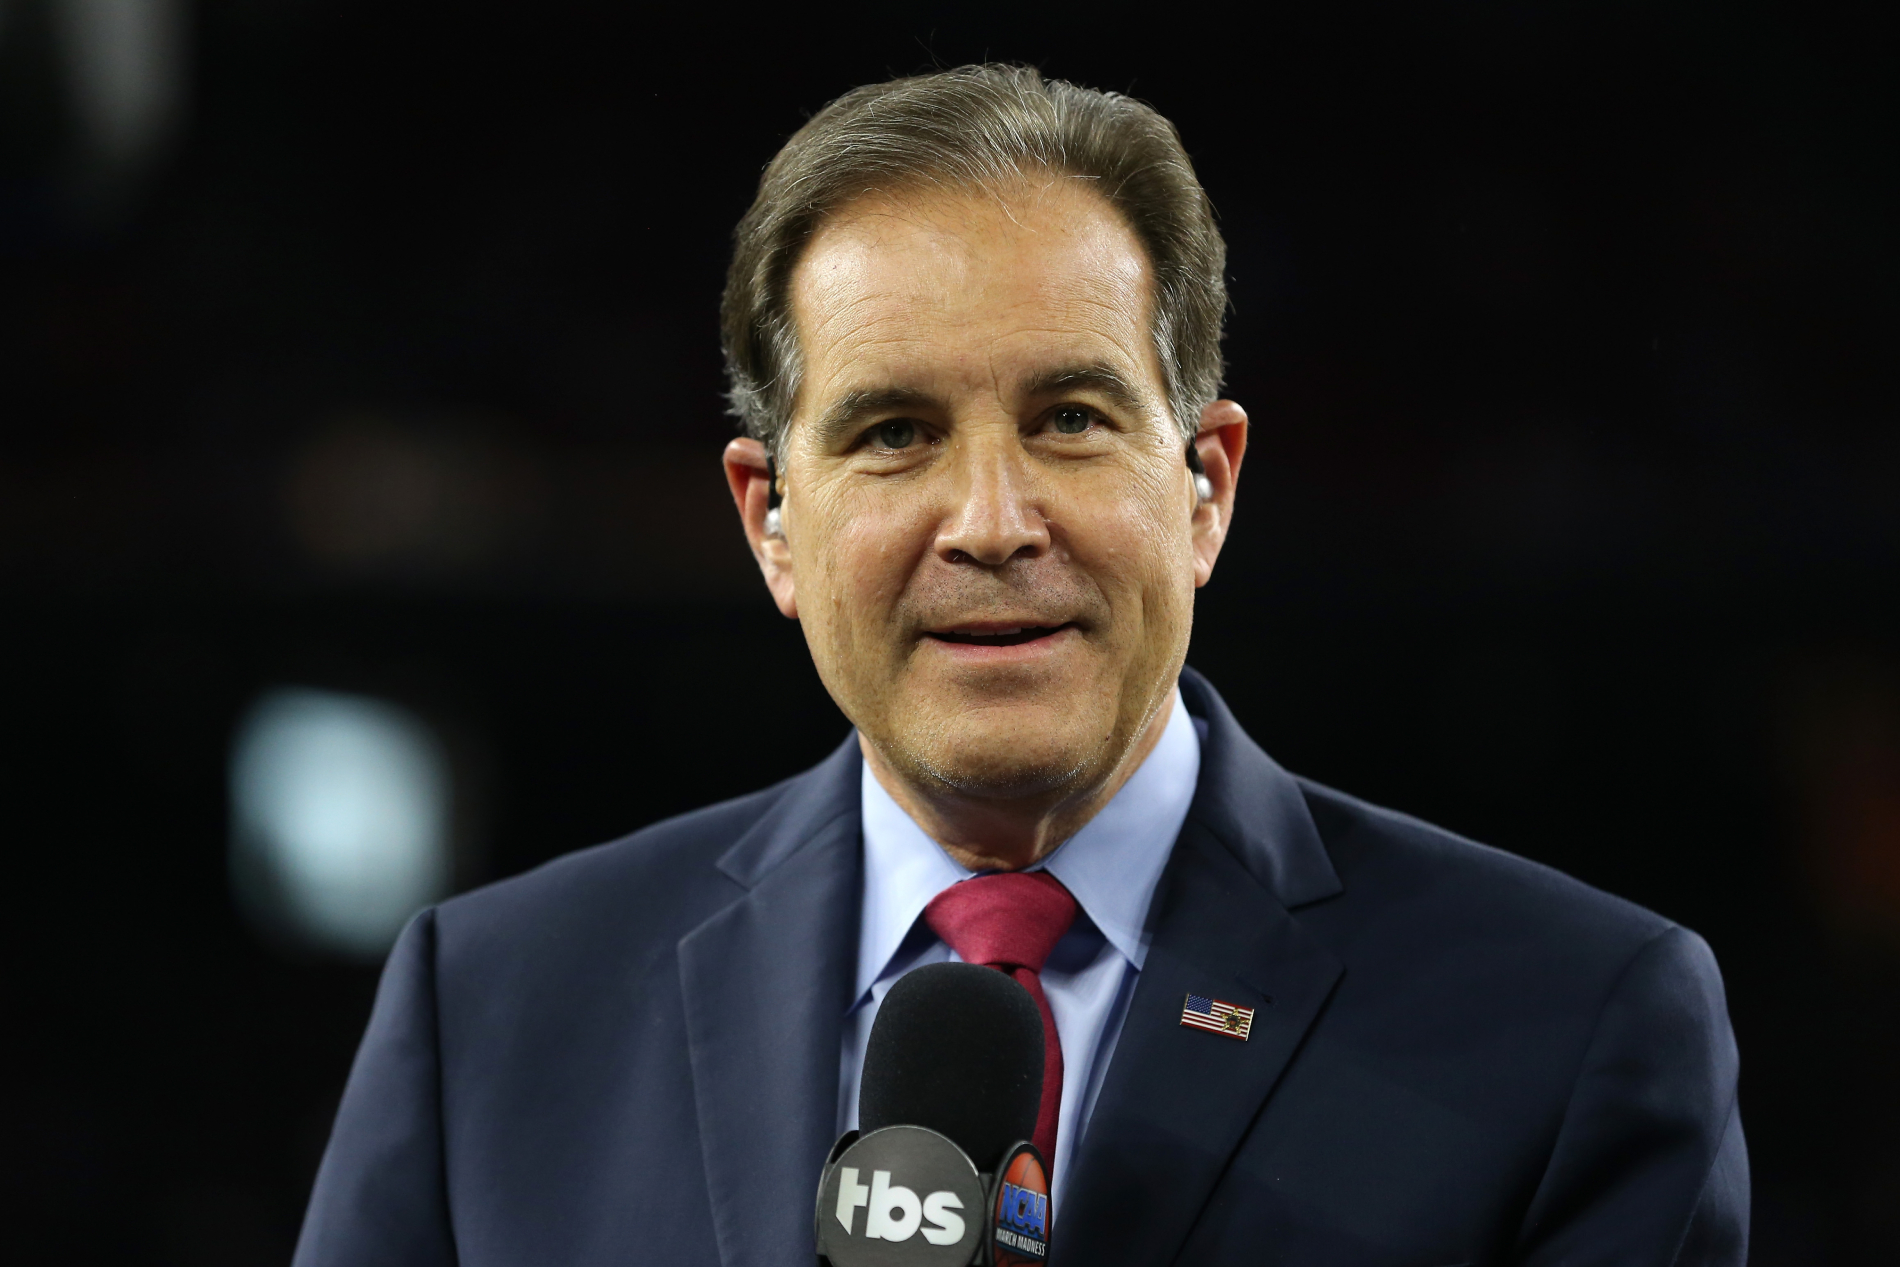 Jim Nantz is a very successful broadcaster. He has also had success as an actor, though, as he appeared on 'How I Met Your Mother'.